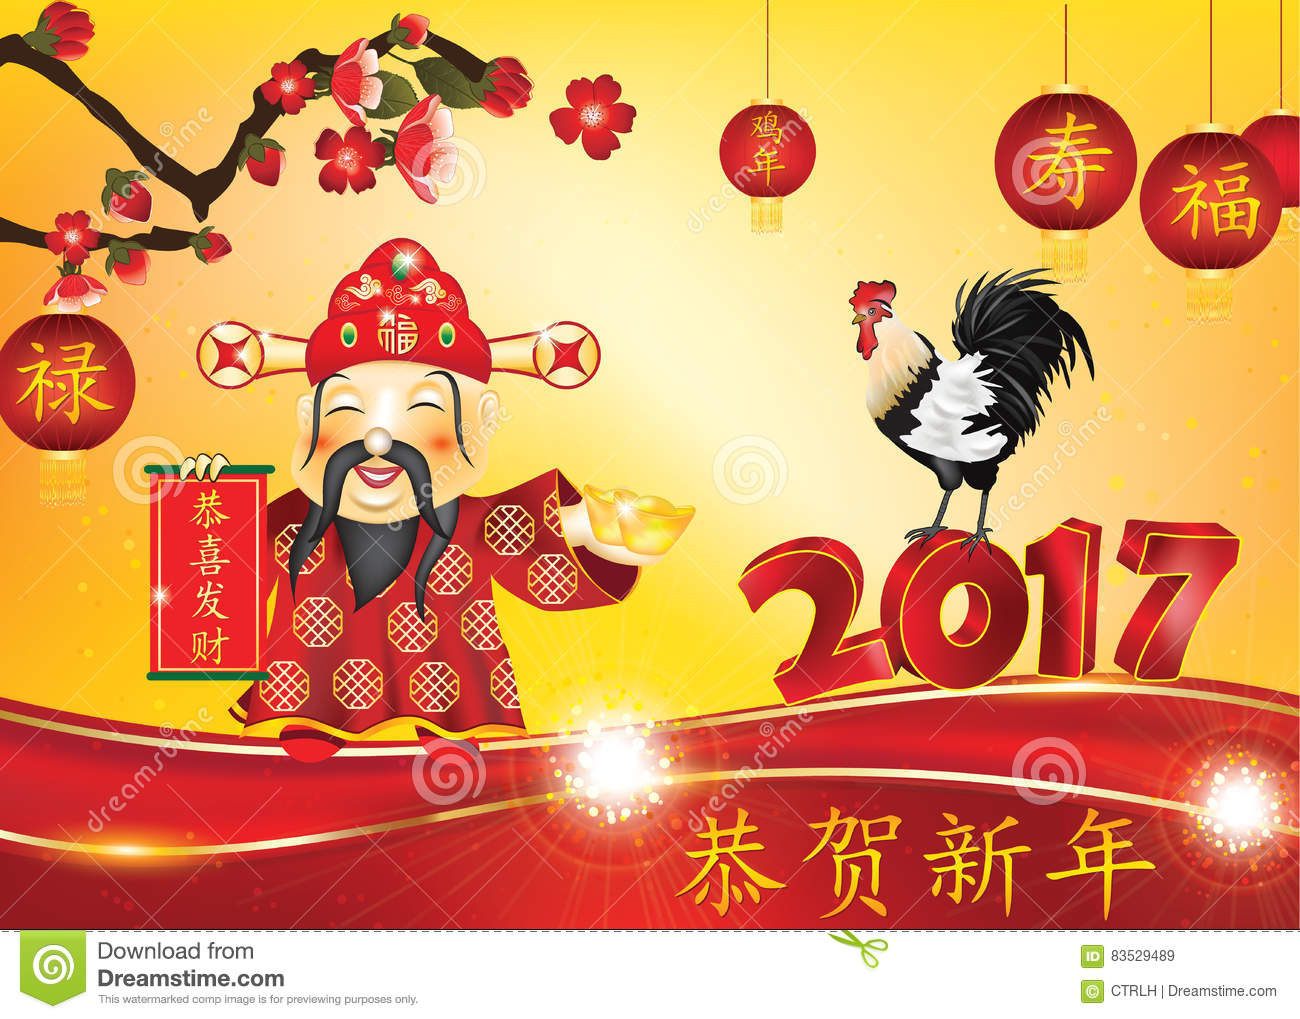 Business chinese new year of the rooster greeting card 2017 stock business chinese greeting card 2017 text translation respectful congratulations on the new year congratulations and prosperity year of the rooster m4hsunfo